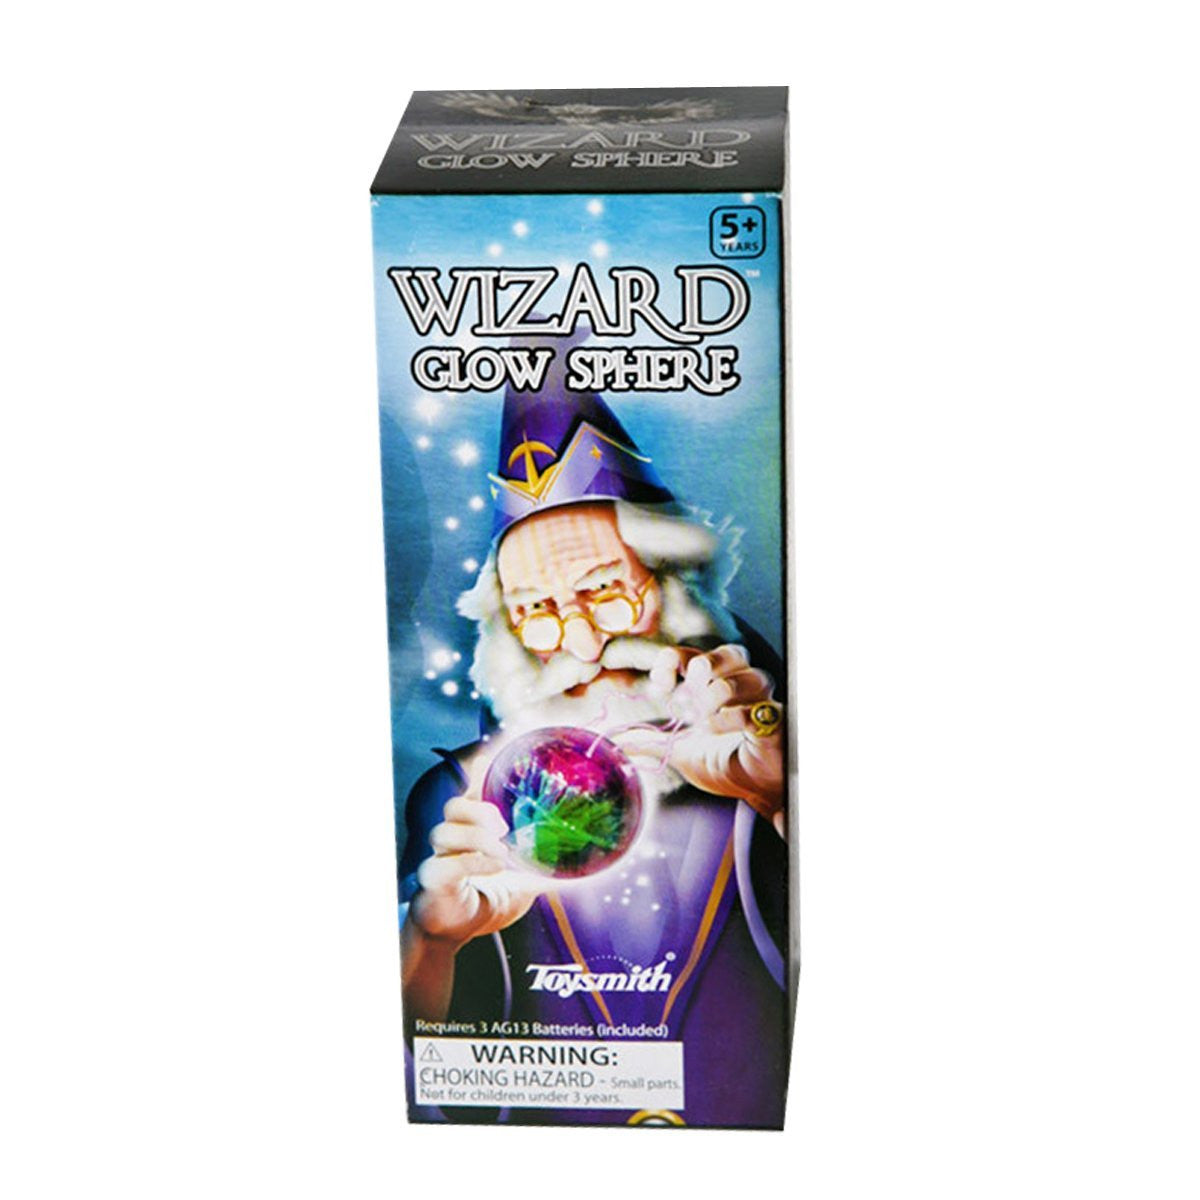 Mystical Wizard Glow Sphere Lighting Effects - Off The Wall Toys and Gifts